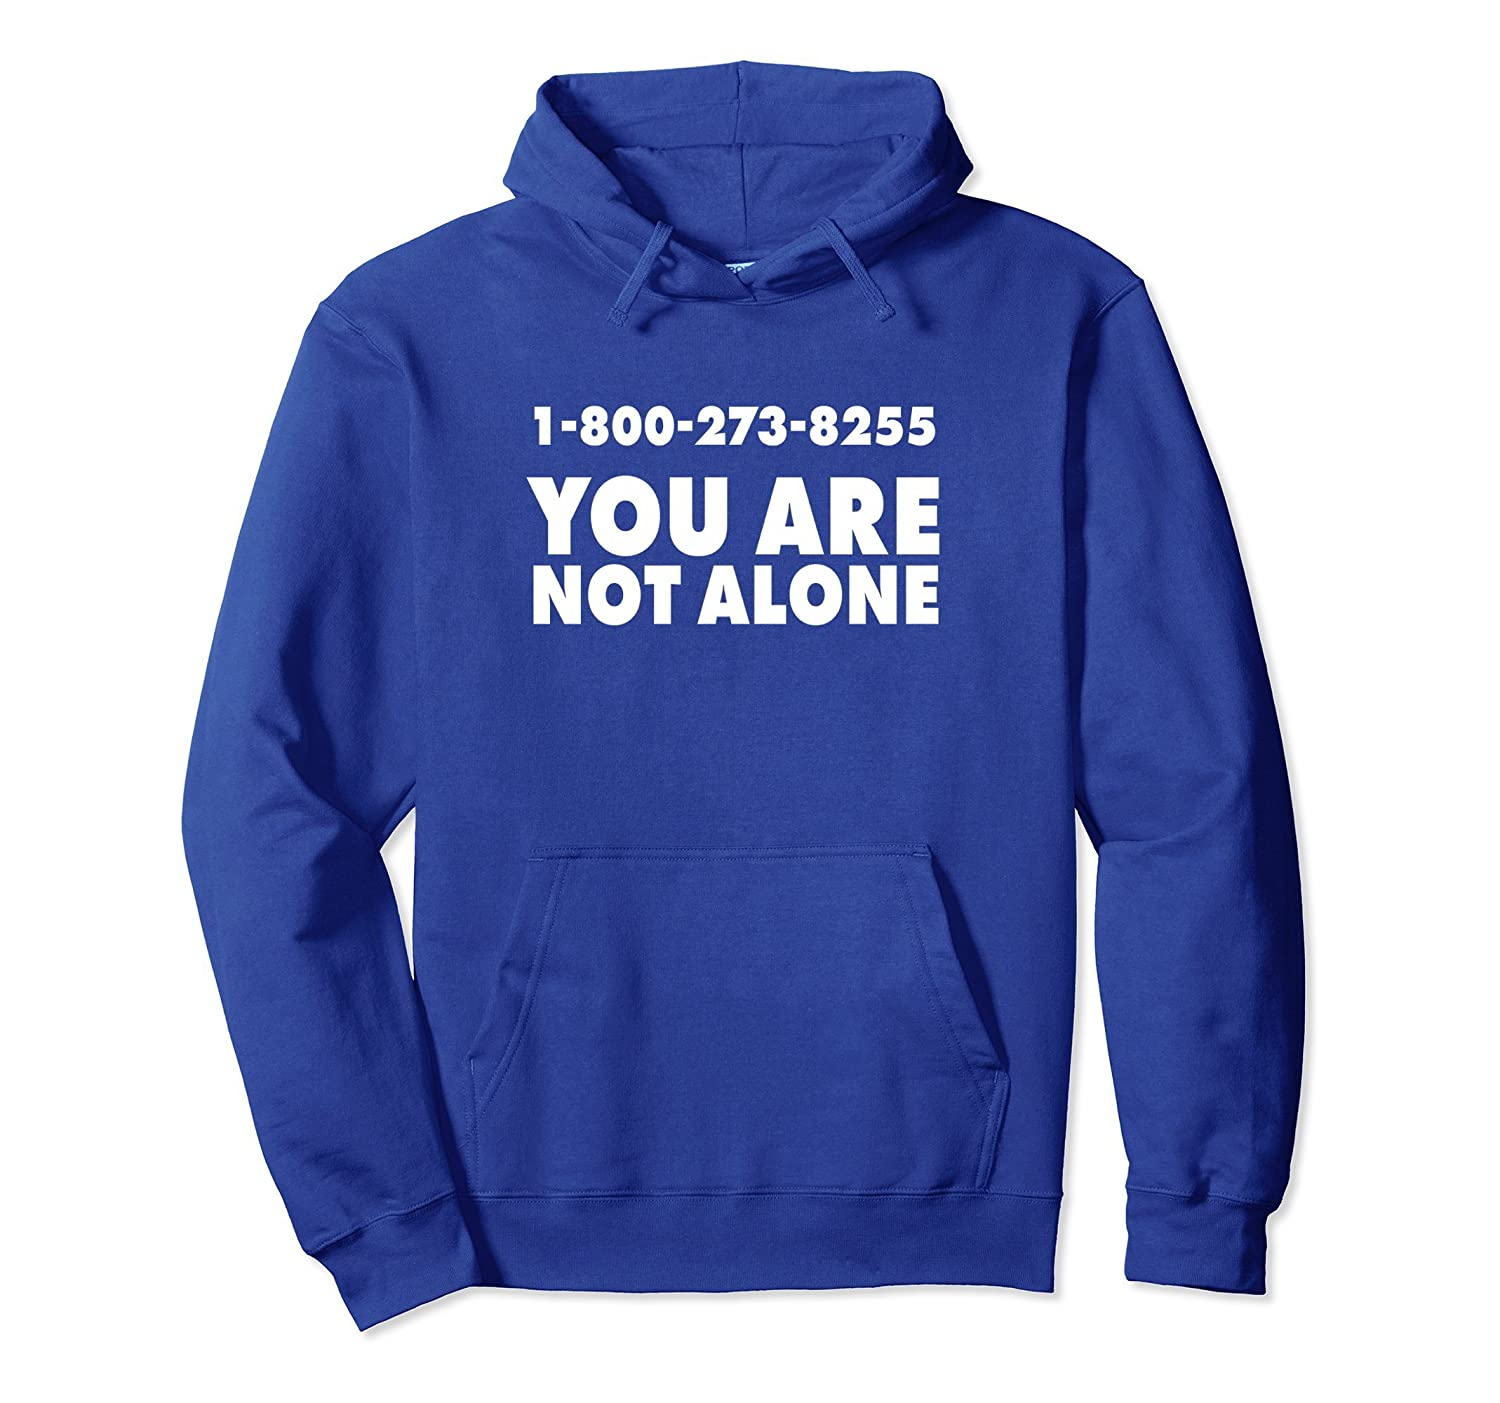 1-800-273-8255 You are not Alone Graphic Pullover Hoodie-alottee gift